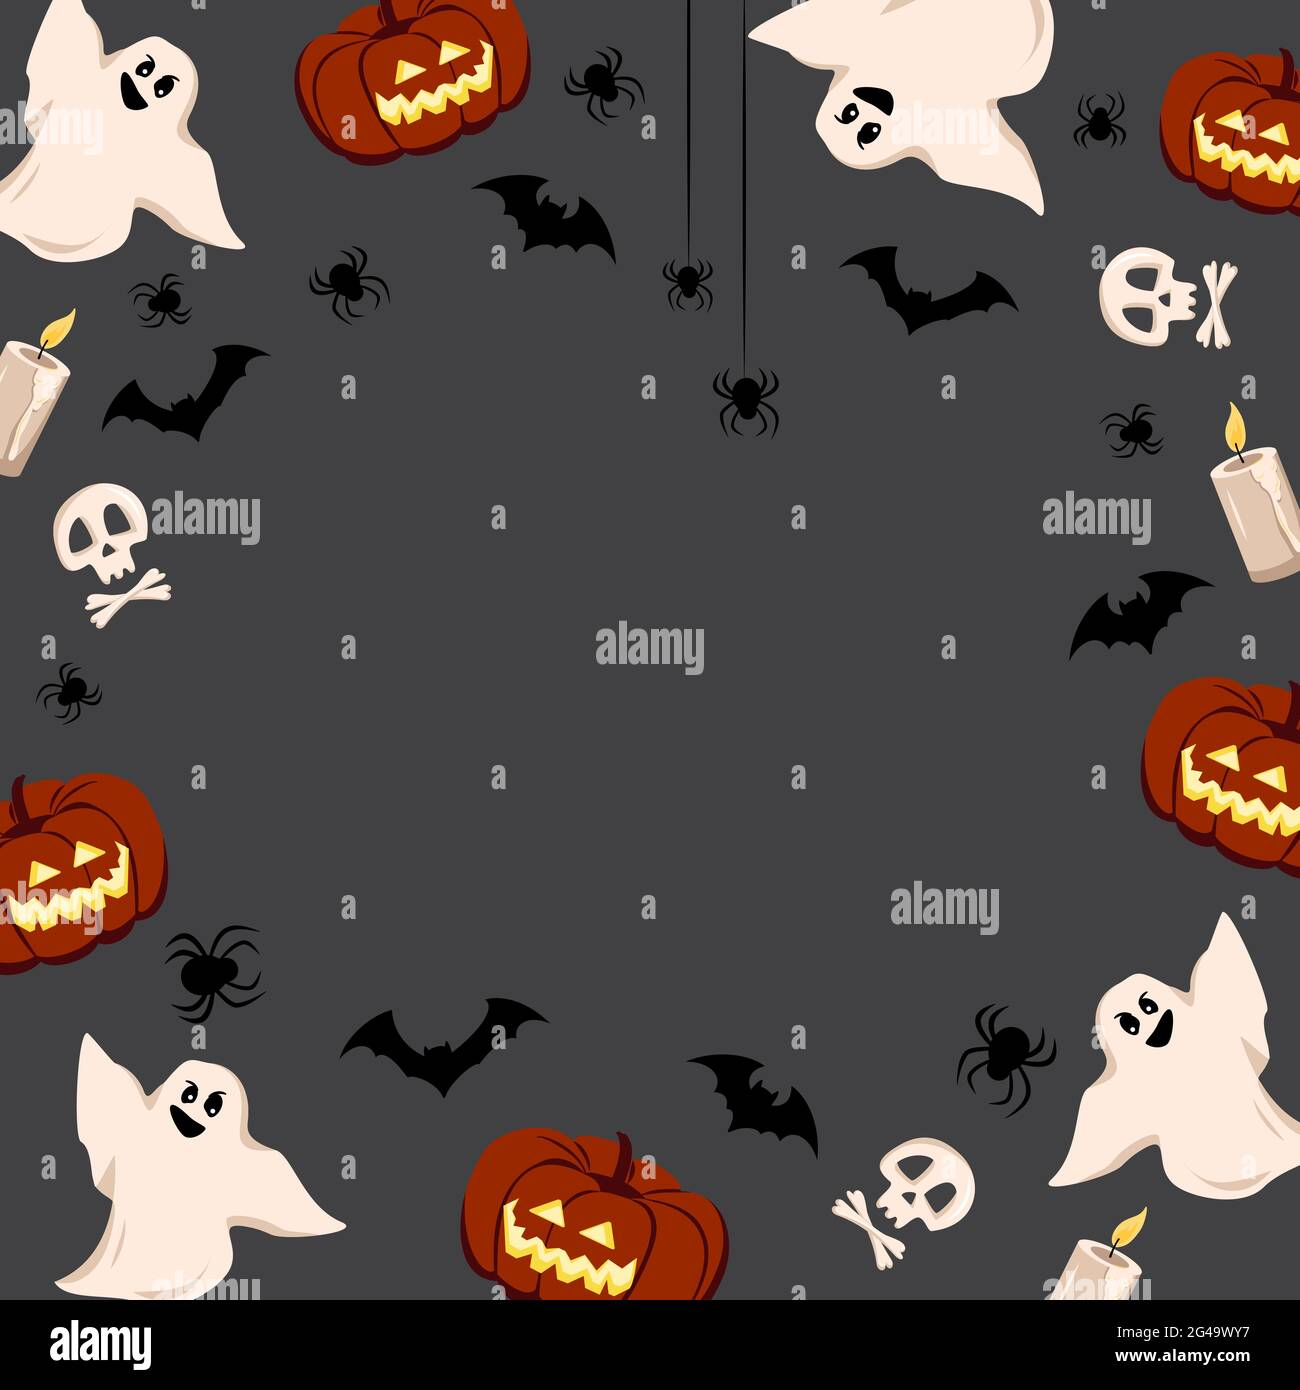 Check out our gallery of horrifying horror images. Bright Halloween Frame On A Dark Background With Pumpkins Ghosts Skulls Bats And Spiders Stock Vector Image Art Alamy